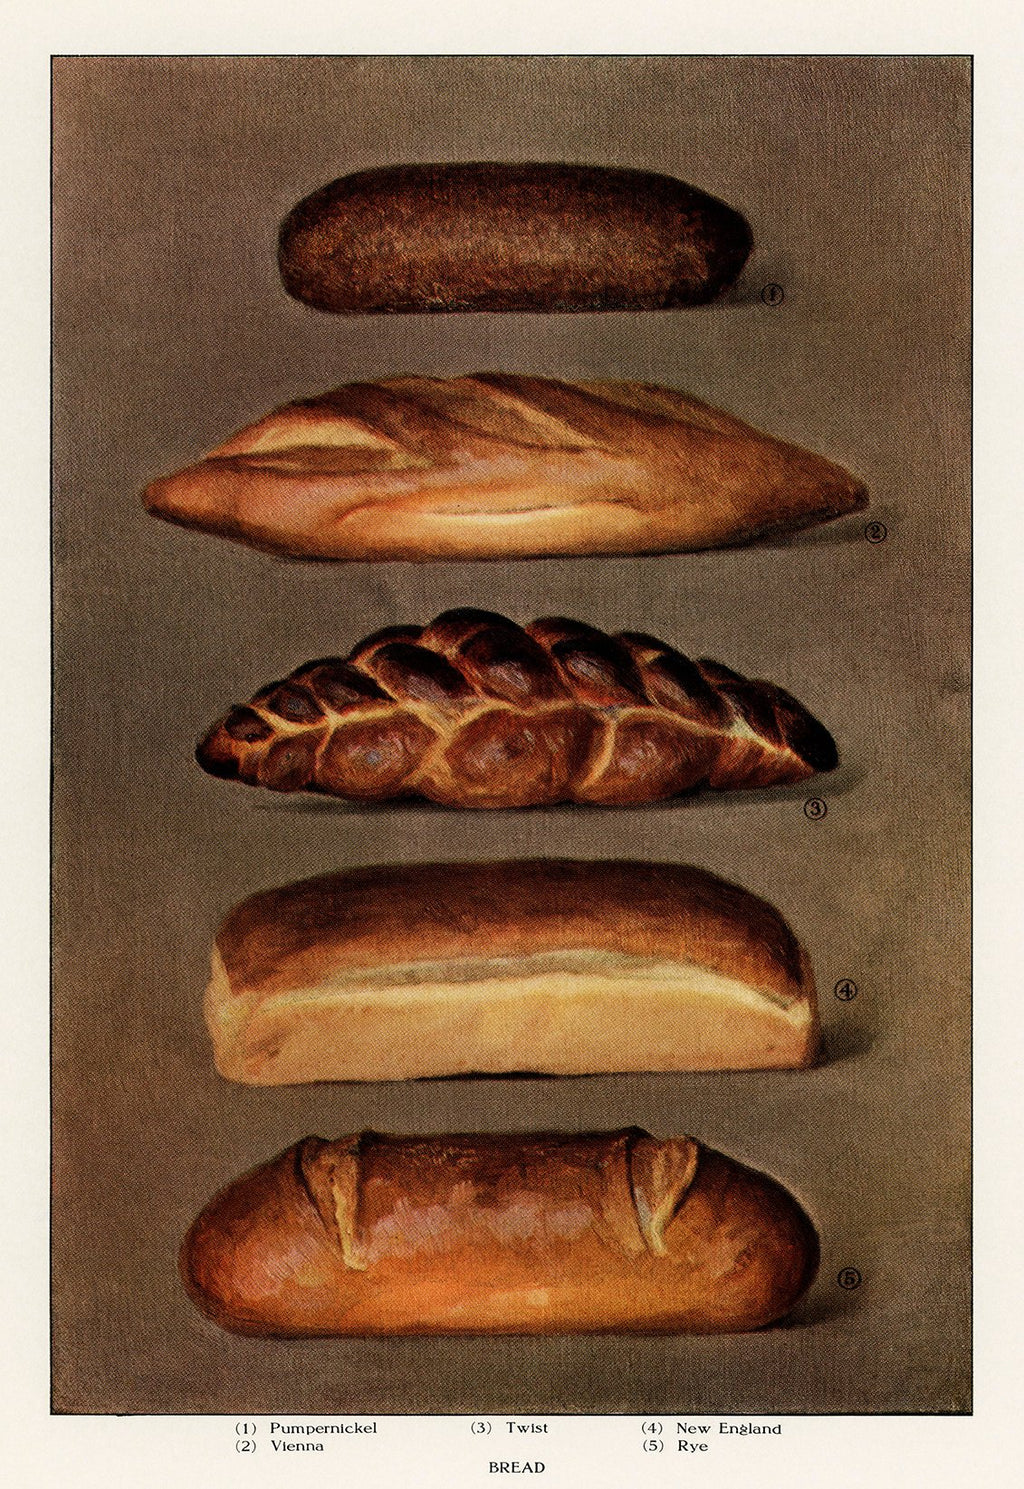 Various types of baked bread loaves from 1911.